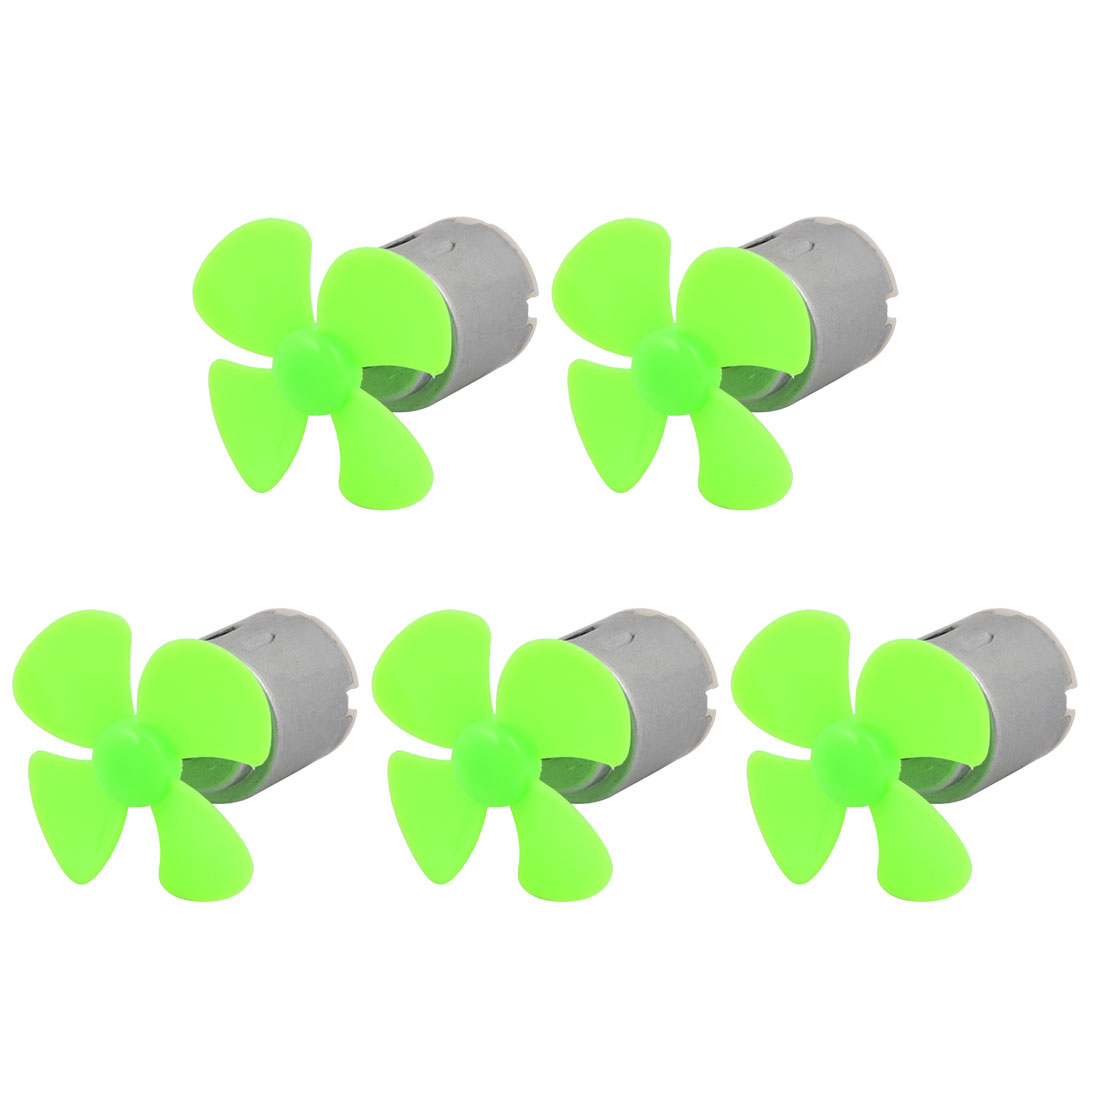 5pcs DC 3V 0.13A 21500RPM Strong Force Motor 4 Vanes 40mm Green Propeller for RC Aircraft